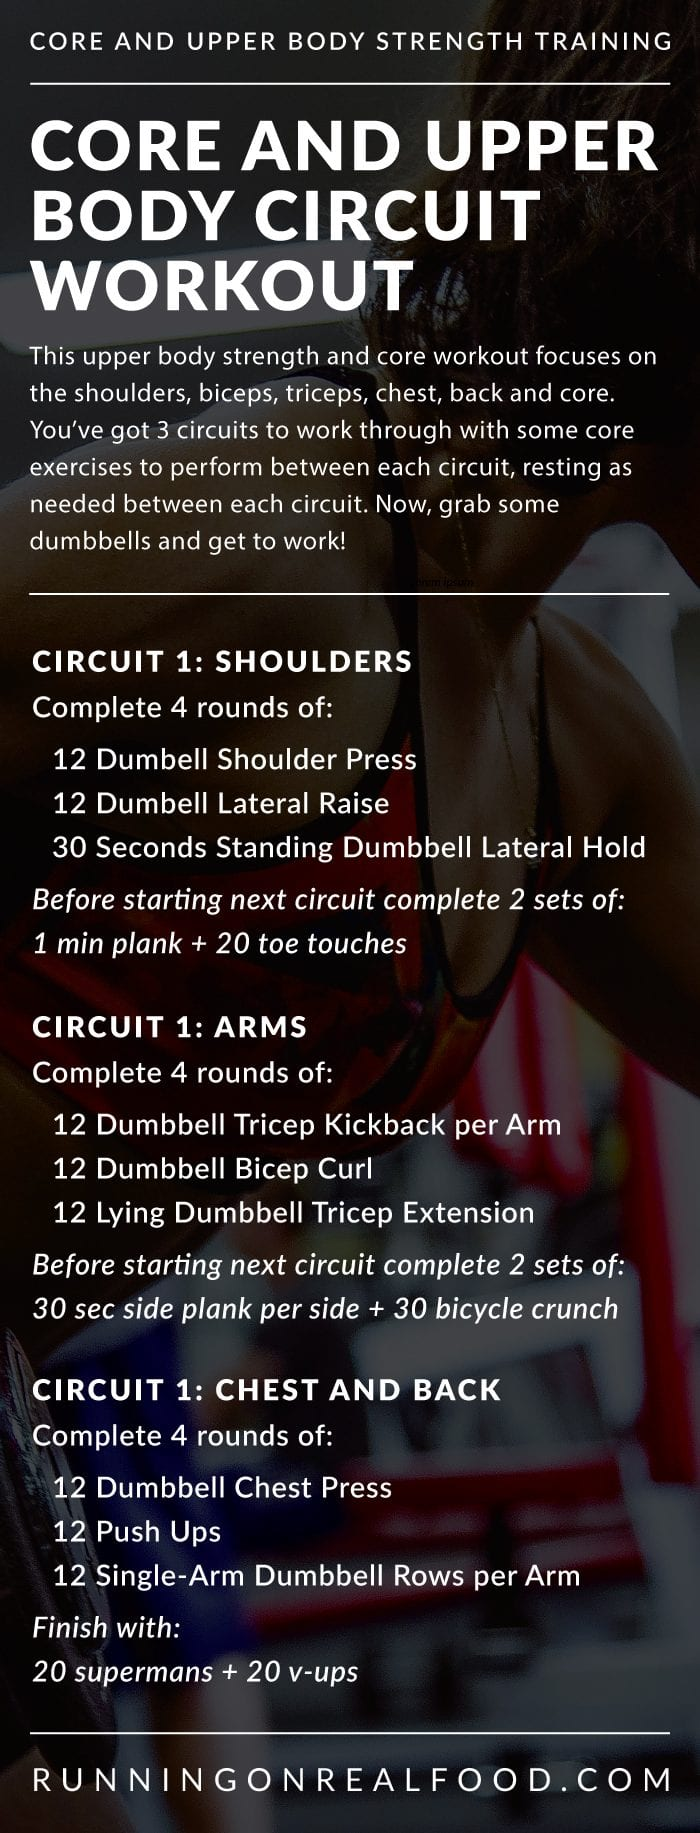 Core and Upper Body Circuit Training Workout